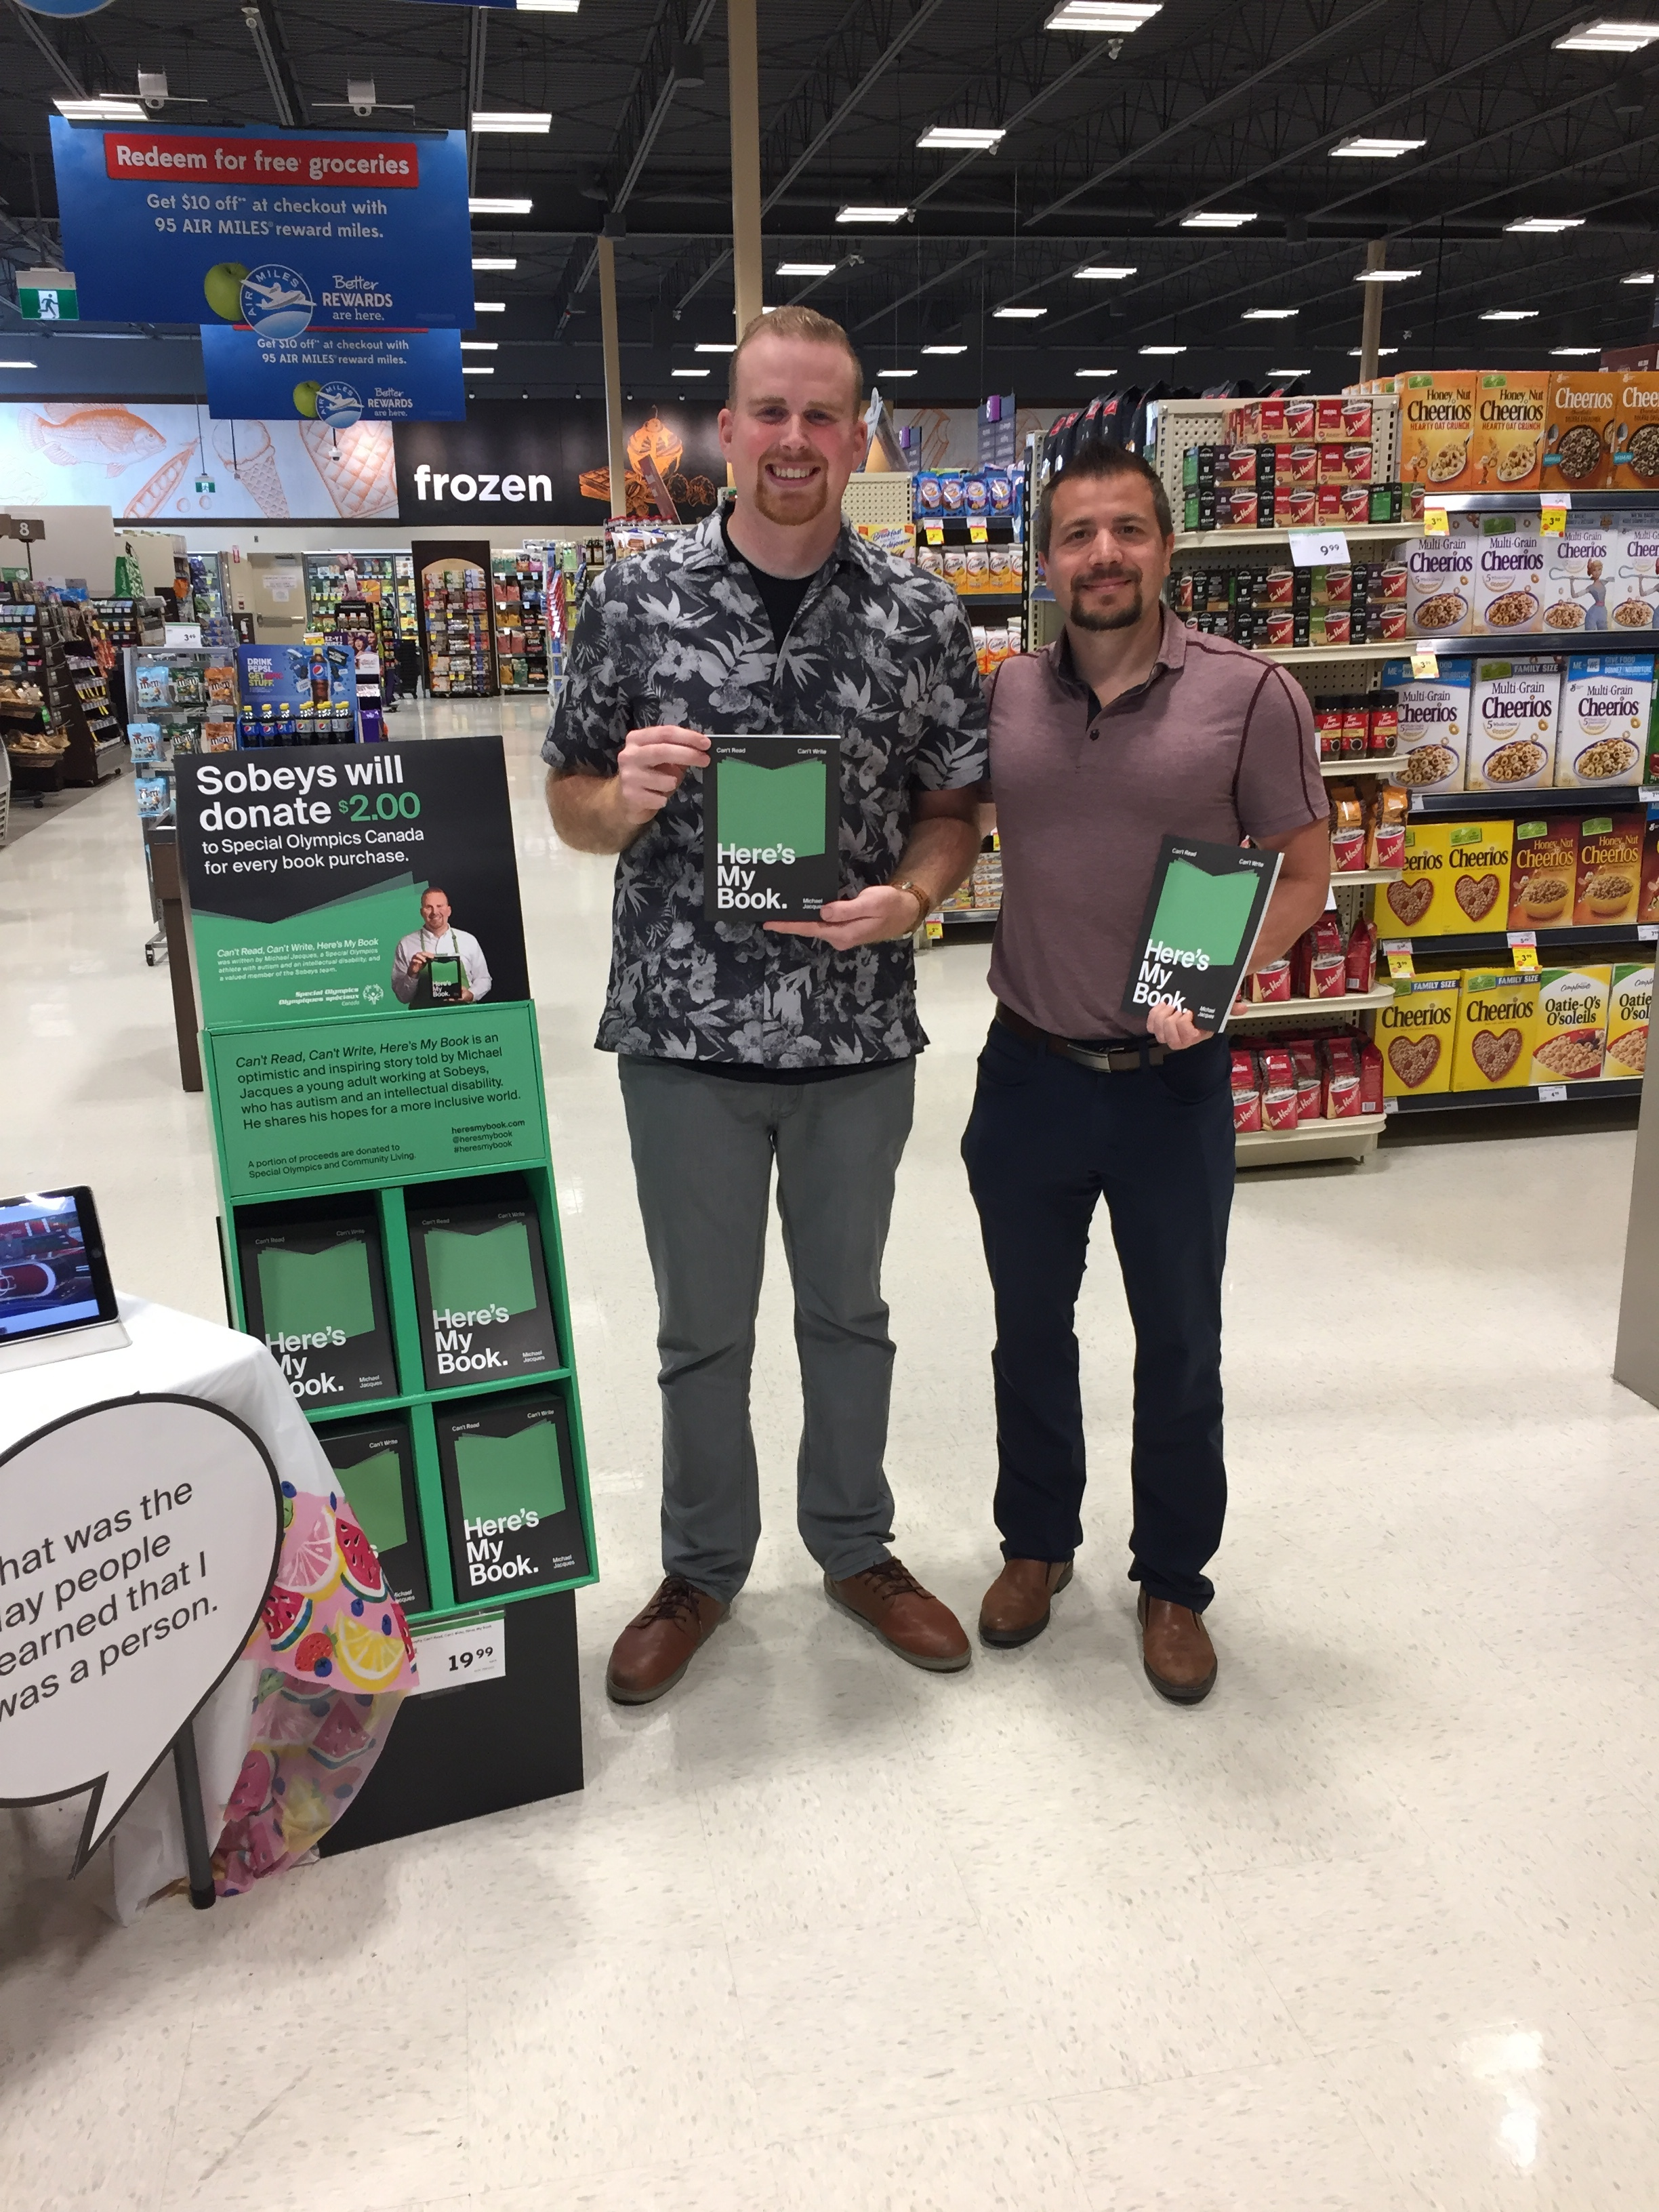 Day 2 – started the morning at the Sobeys in Stoney Creek, also got to see my cousin Paul.